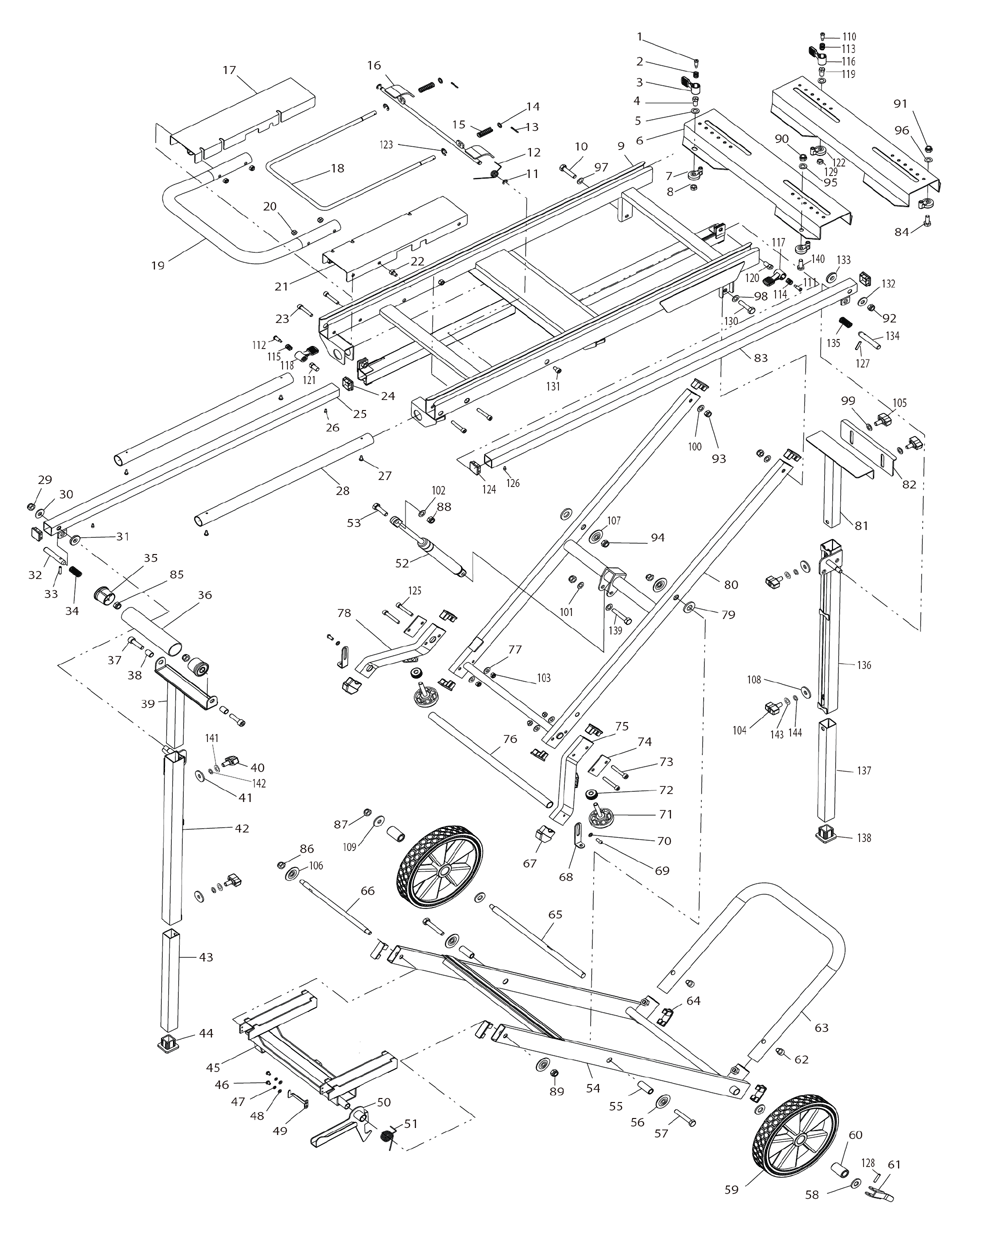 Buy Makita Wst05 Replacement Tool Parts A Href Powermatic 2800 List And Diagram Ereplacementpartscom Schematic